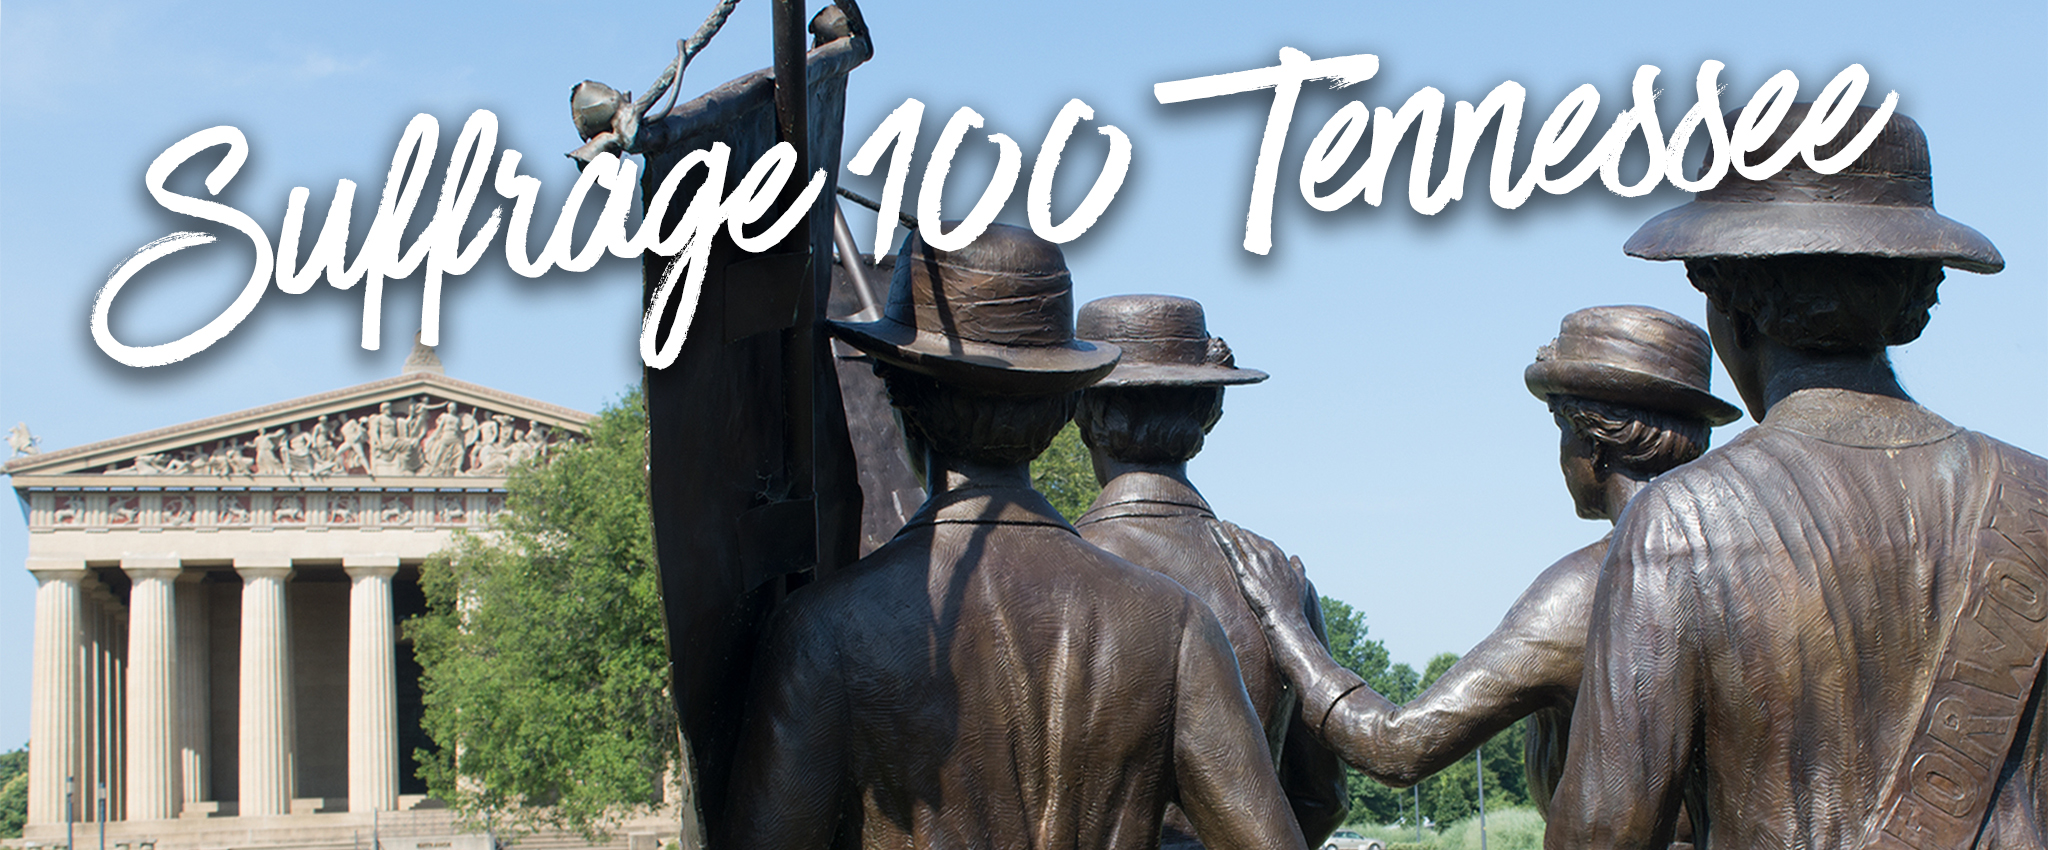 Suffrage 100 Tennessee